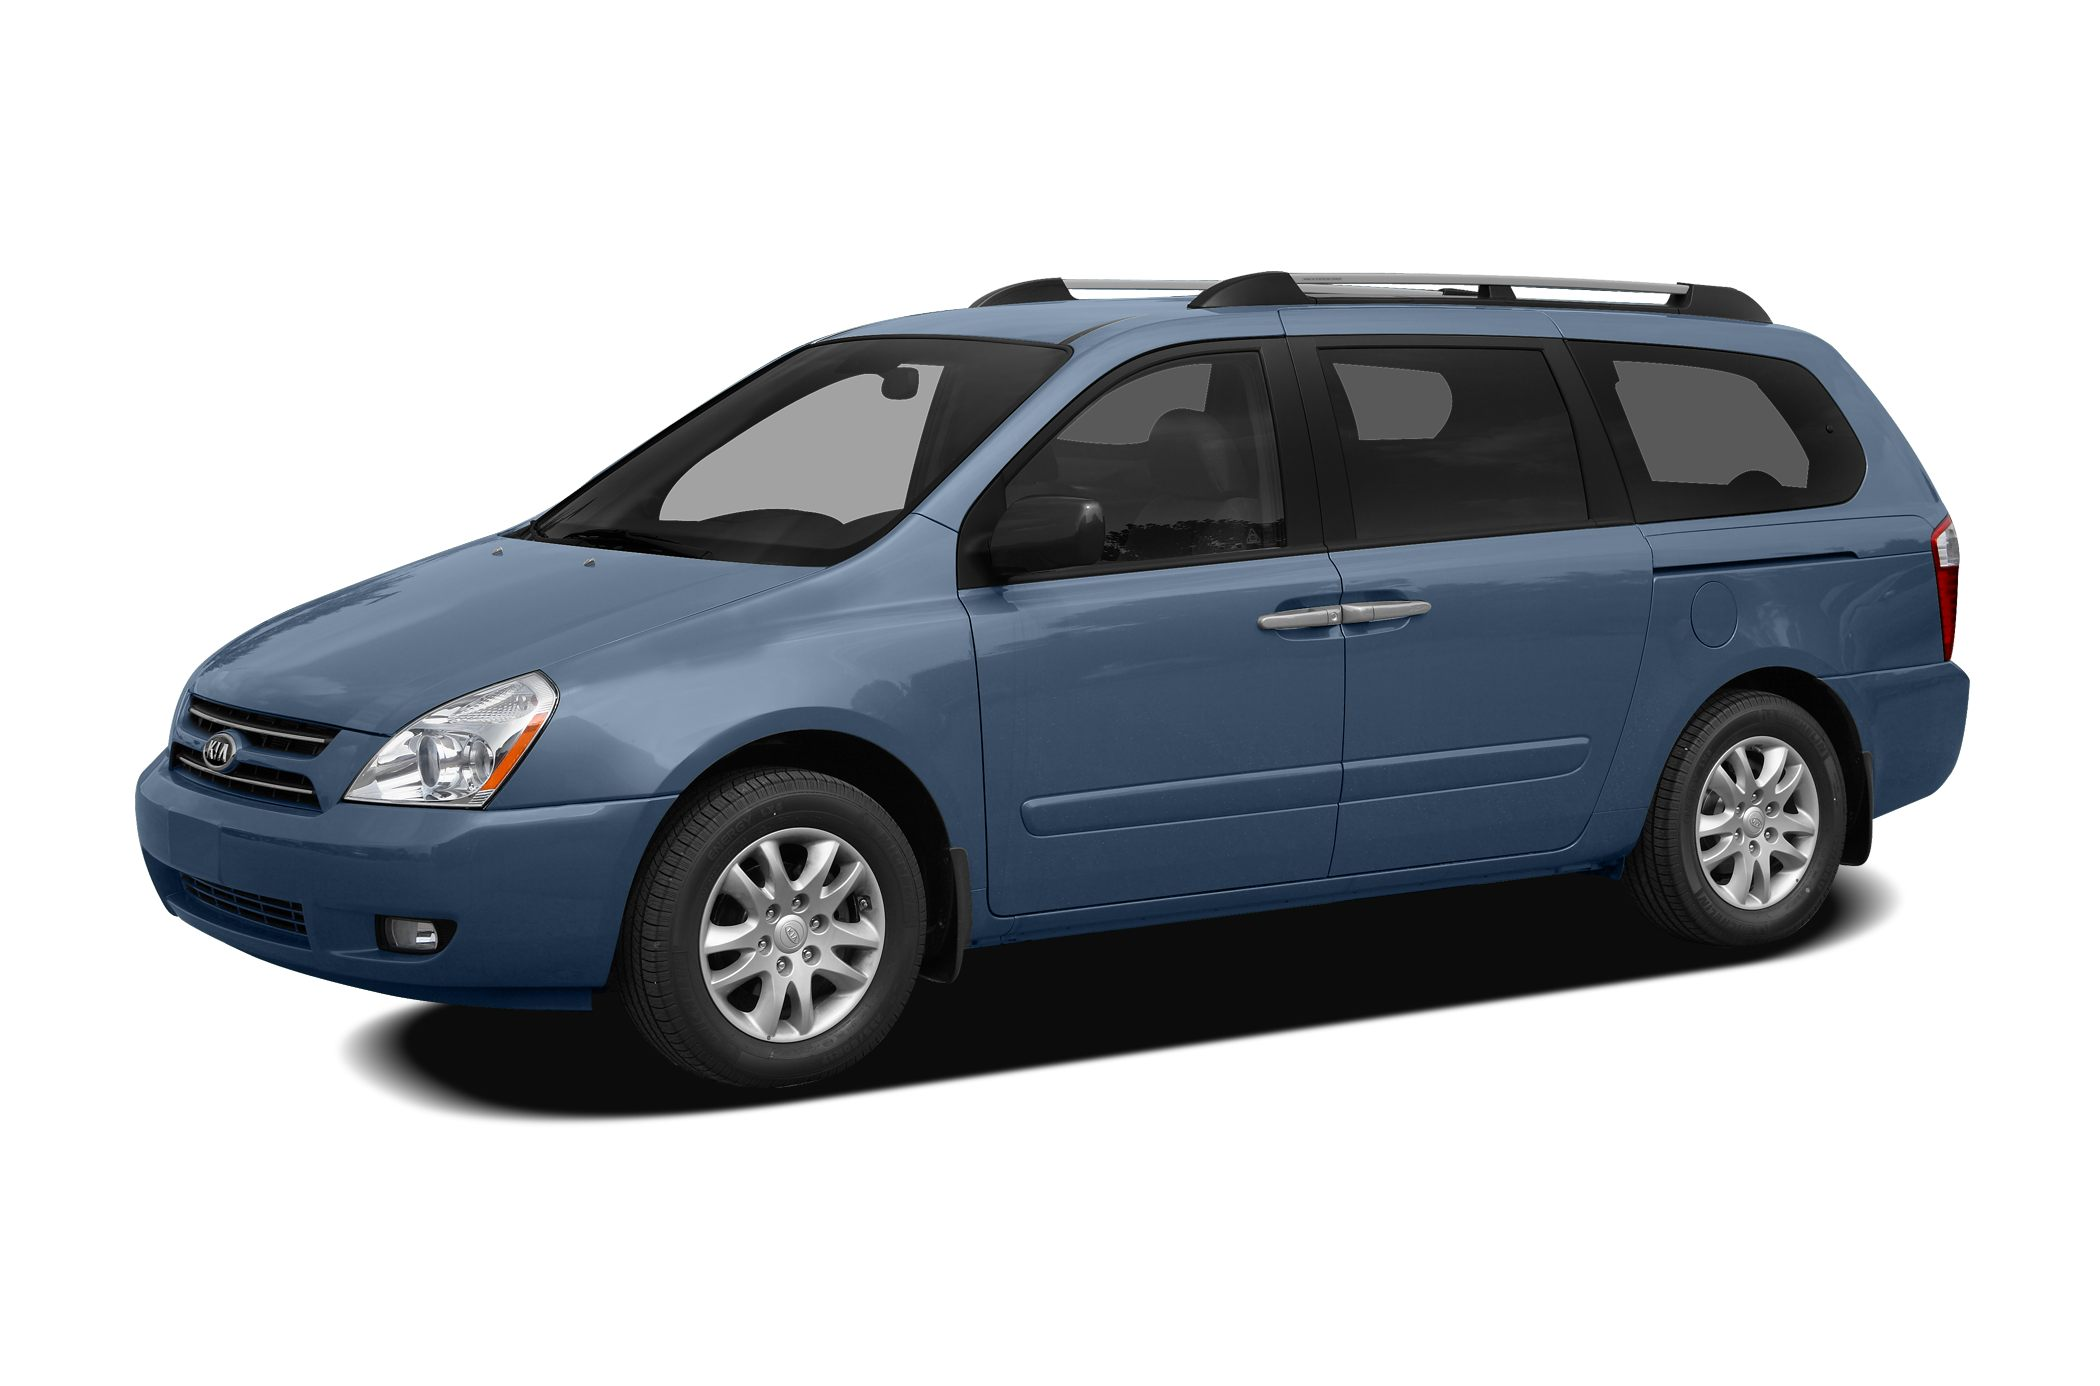 Kia Sedona for hire at Just In Time Transportation Services